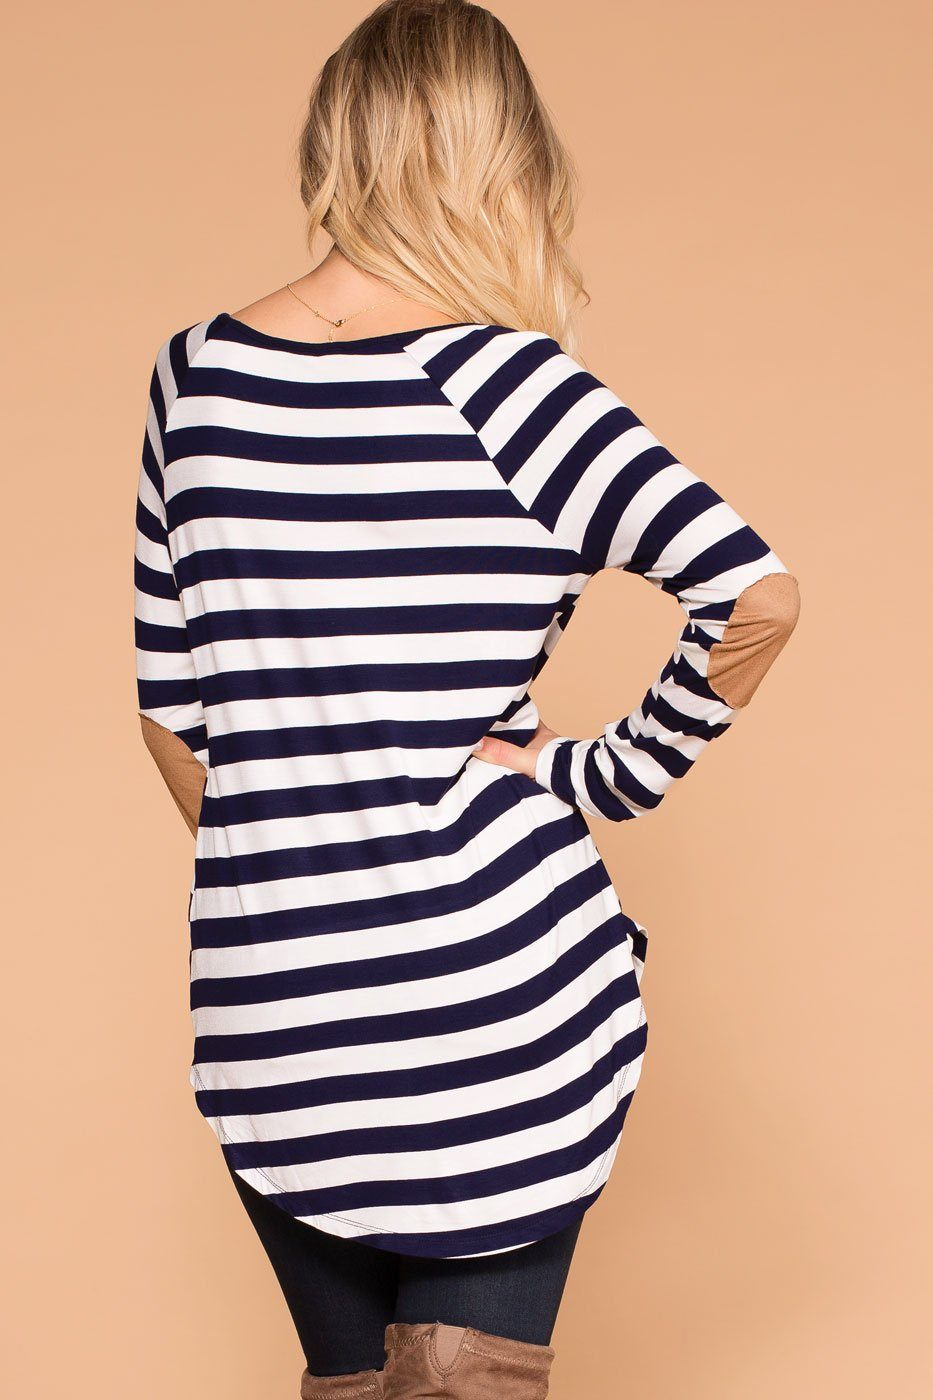 Priceless | Navy | Striped Top | Elbow Patch Top | Womens